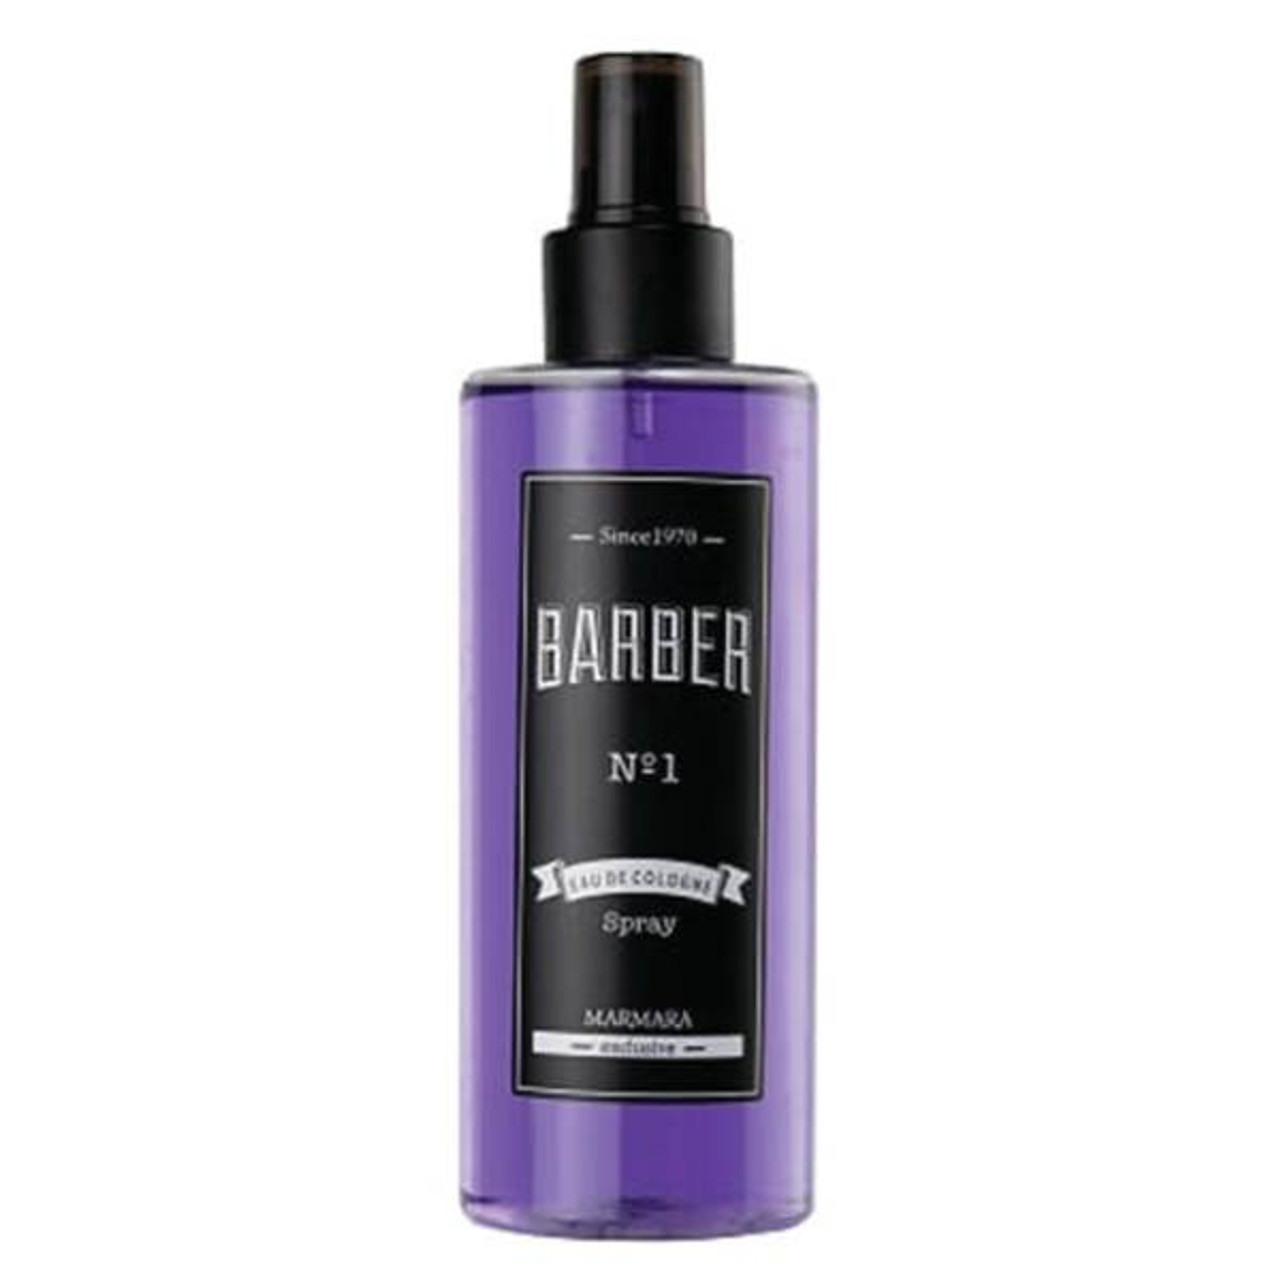 Barber No.1 by Marmara Aftershave Small